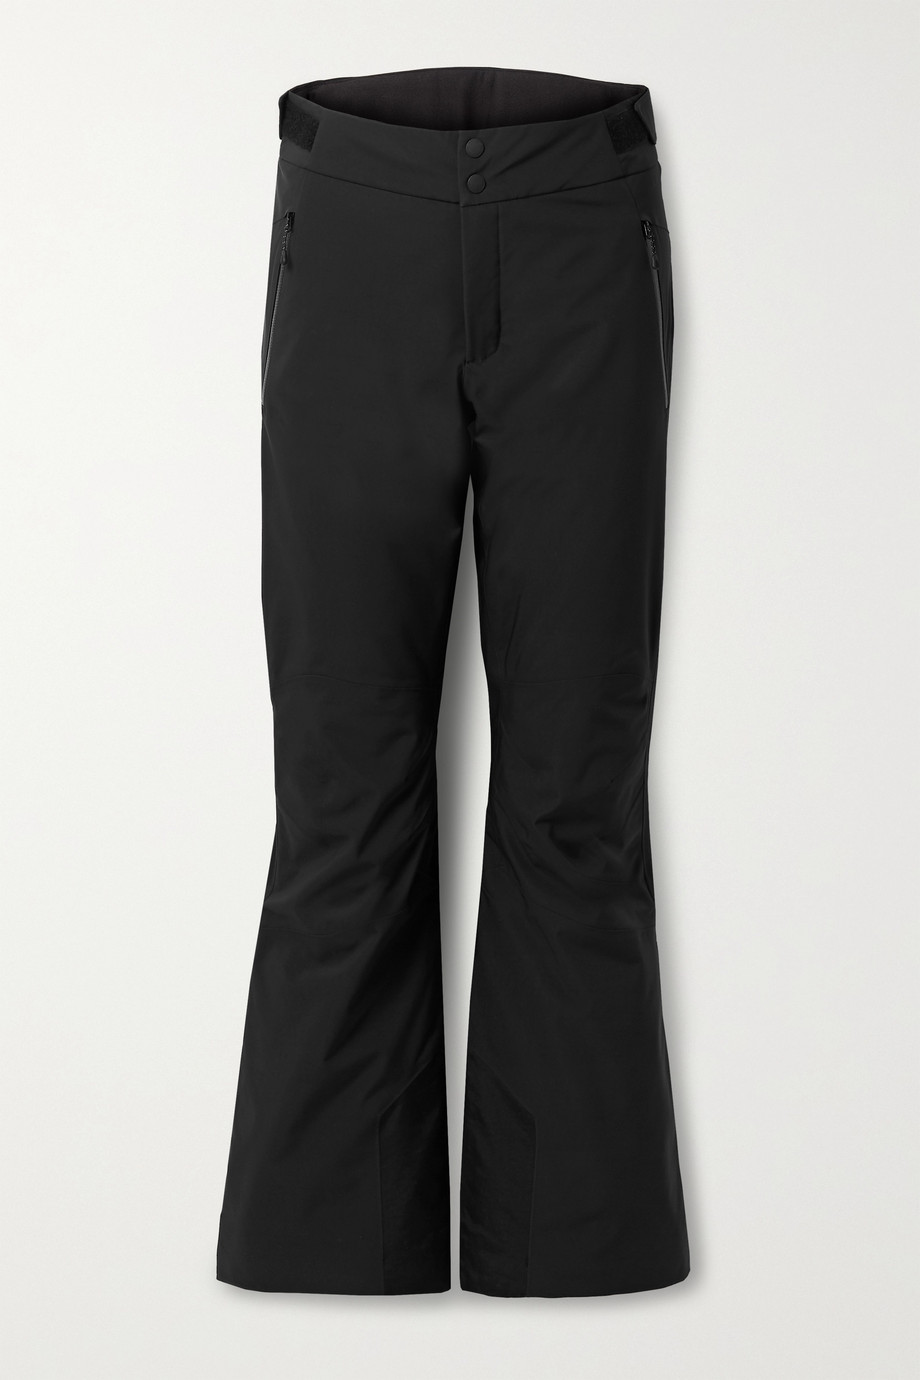 BOGNER FIRE+ICE Maila canvas-trimmed ski pants